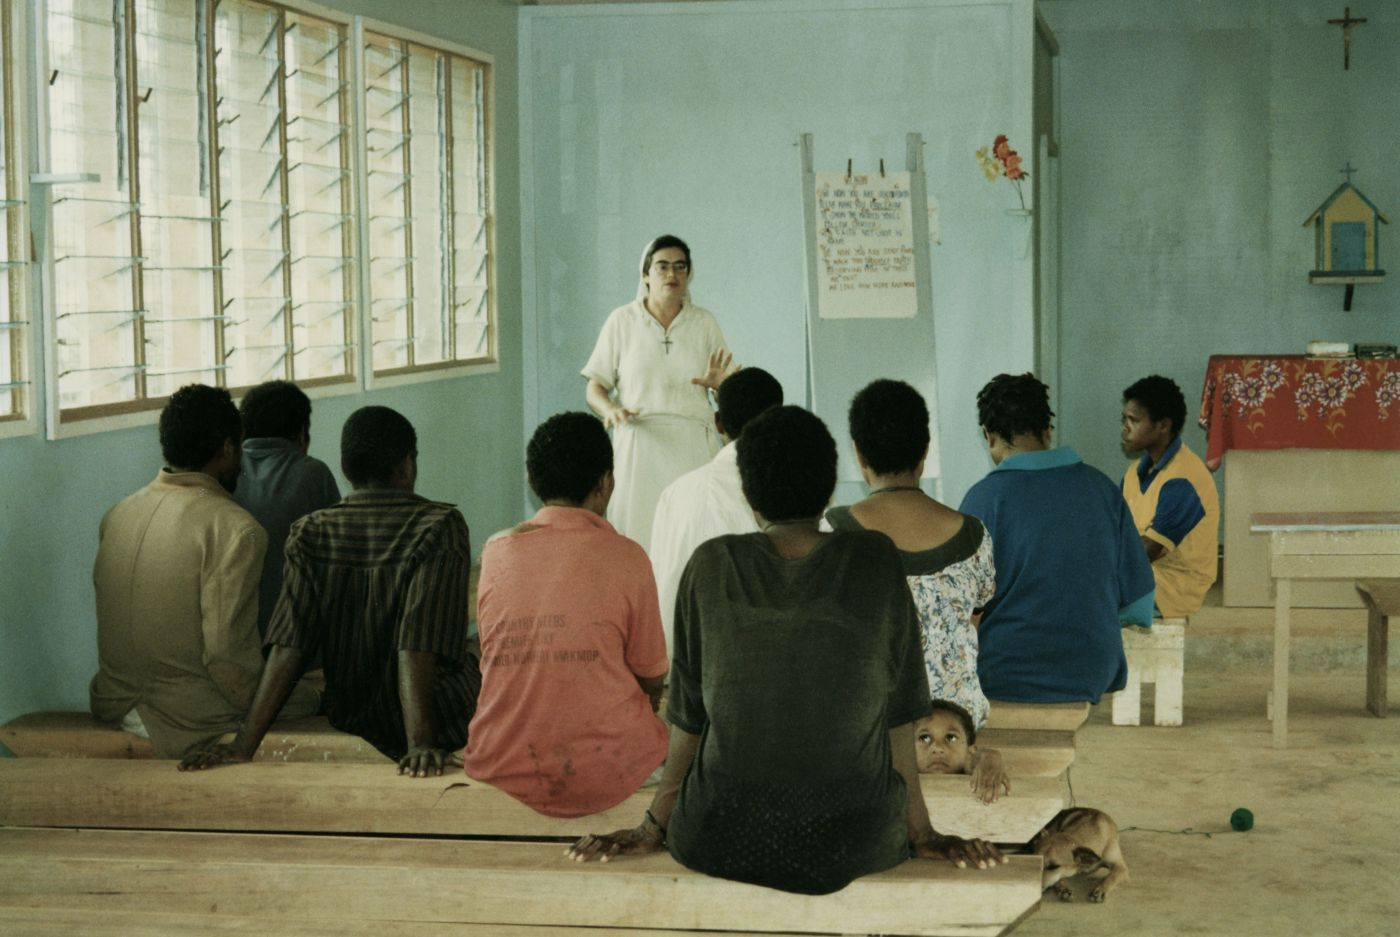 Colour photograph of a middle-aged nun, dressed in white. She is teaching a group of nine black adults in a rudimentary classroom. The students are sitting on wooden benches. A young boy and a dog are also present in the classroom.